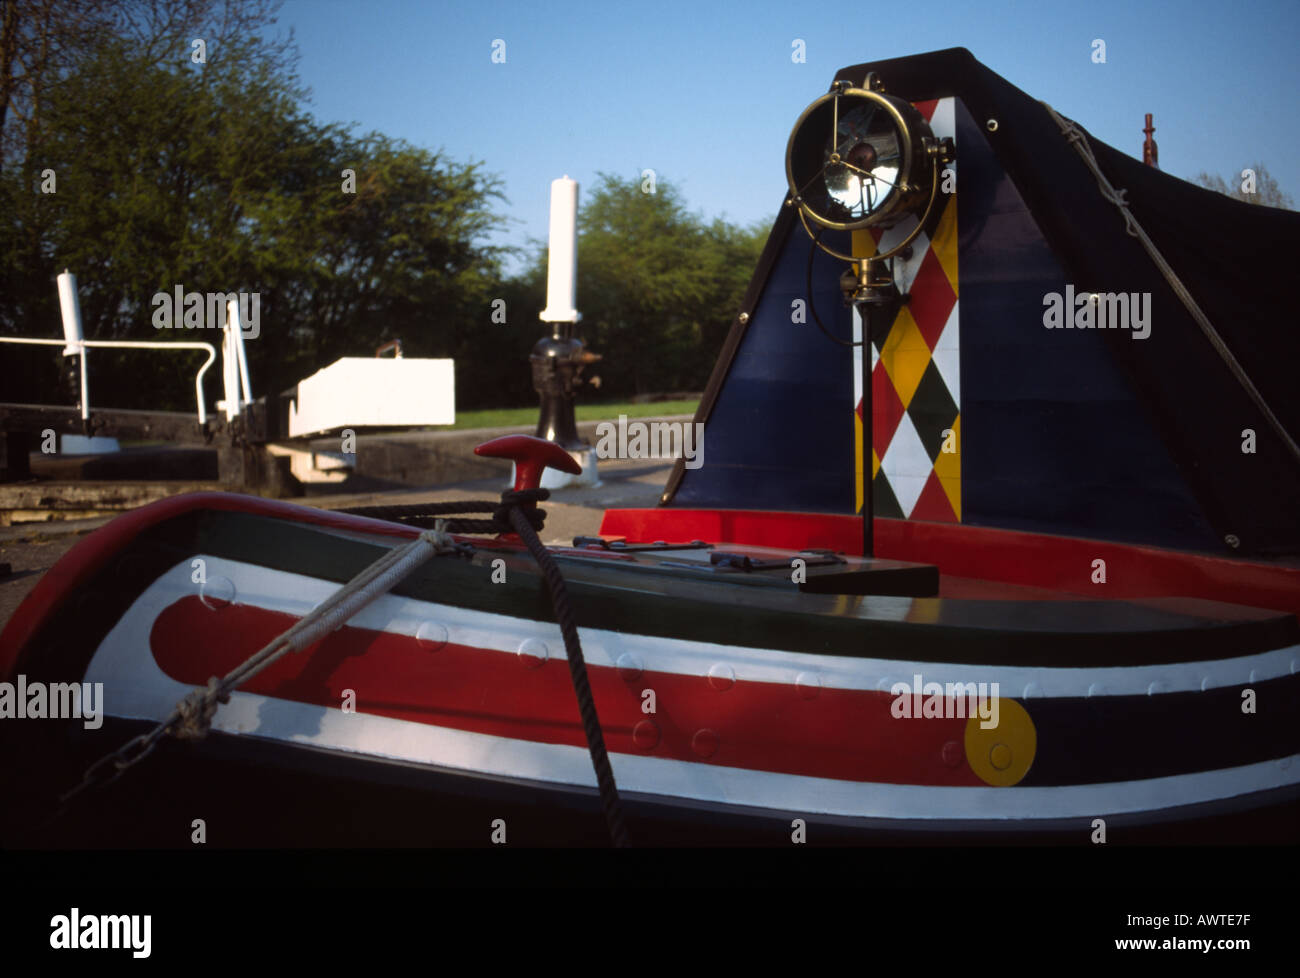 PICTURE CREDIT DOUG BLANE Traditional narrowboat with canal lock in background Grand Union Junction Canal - Stock Image